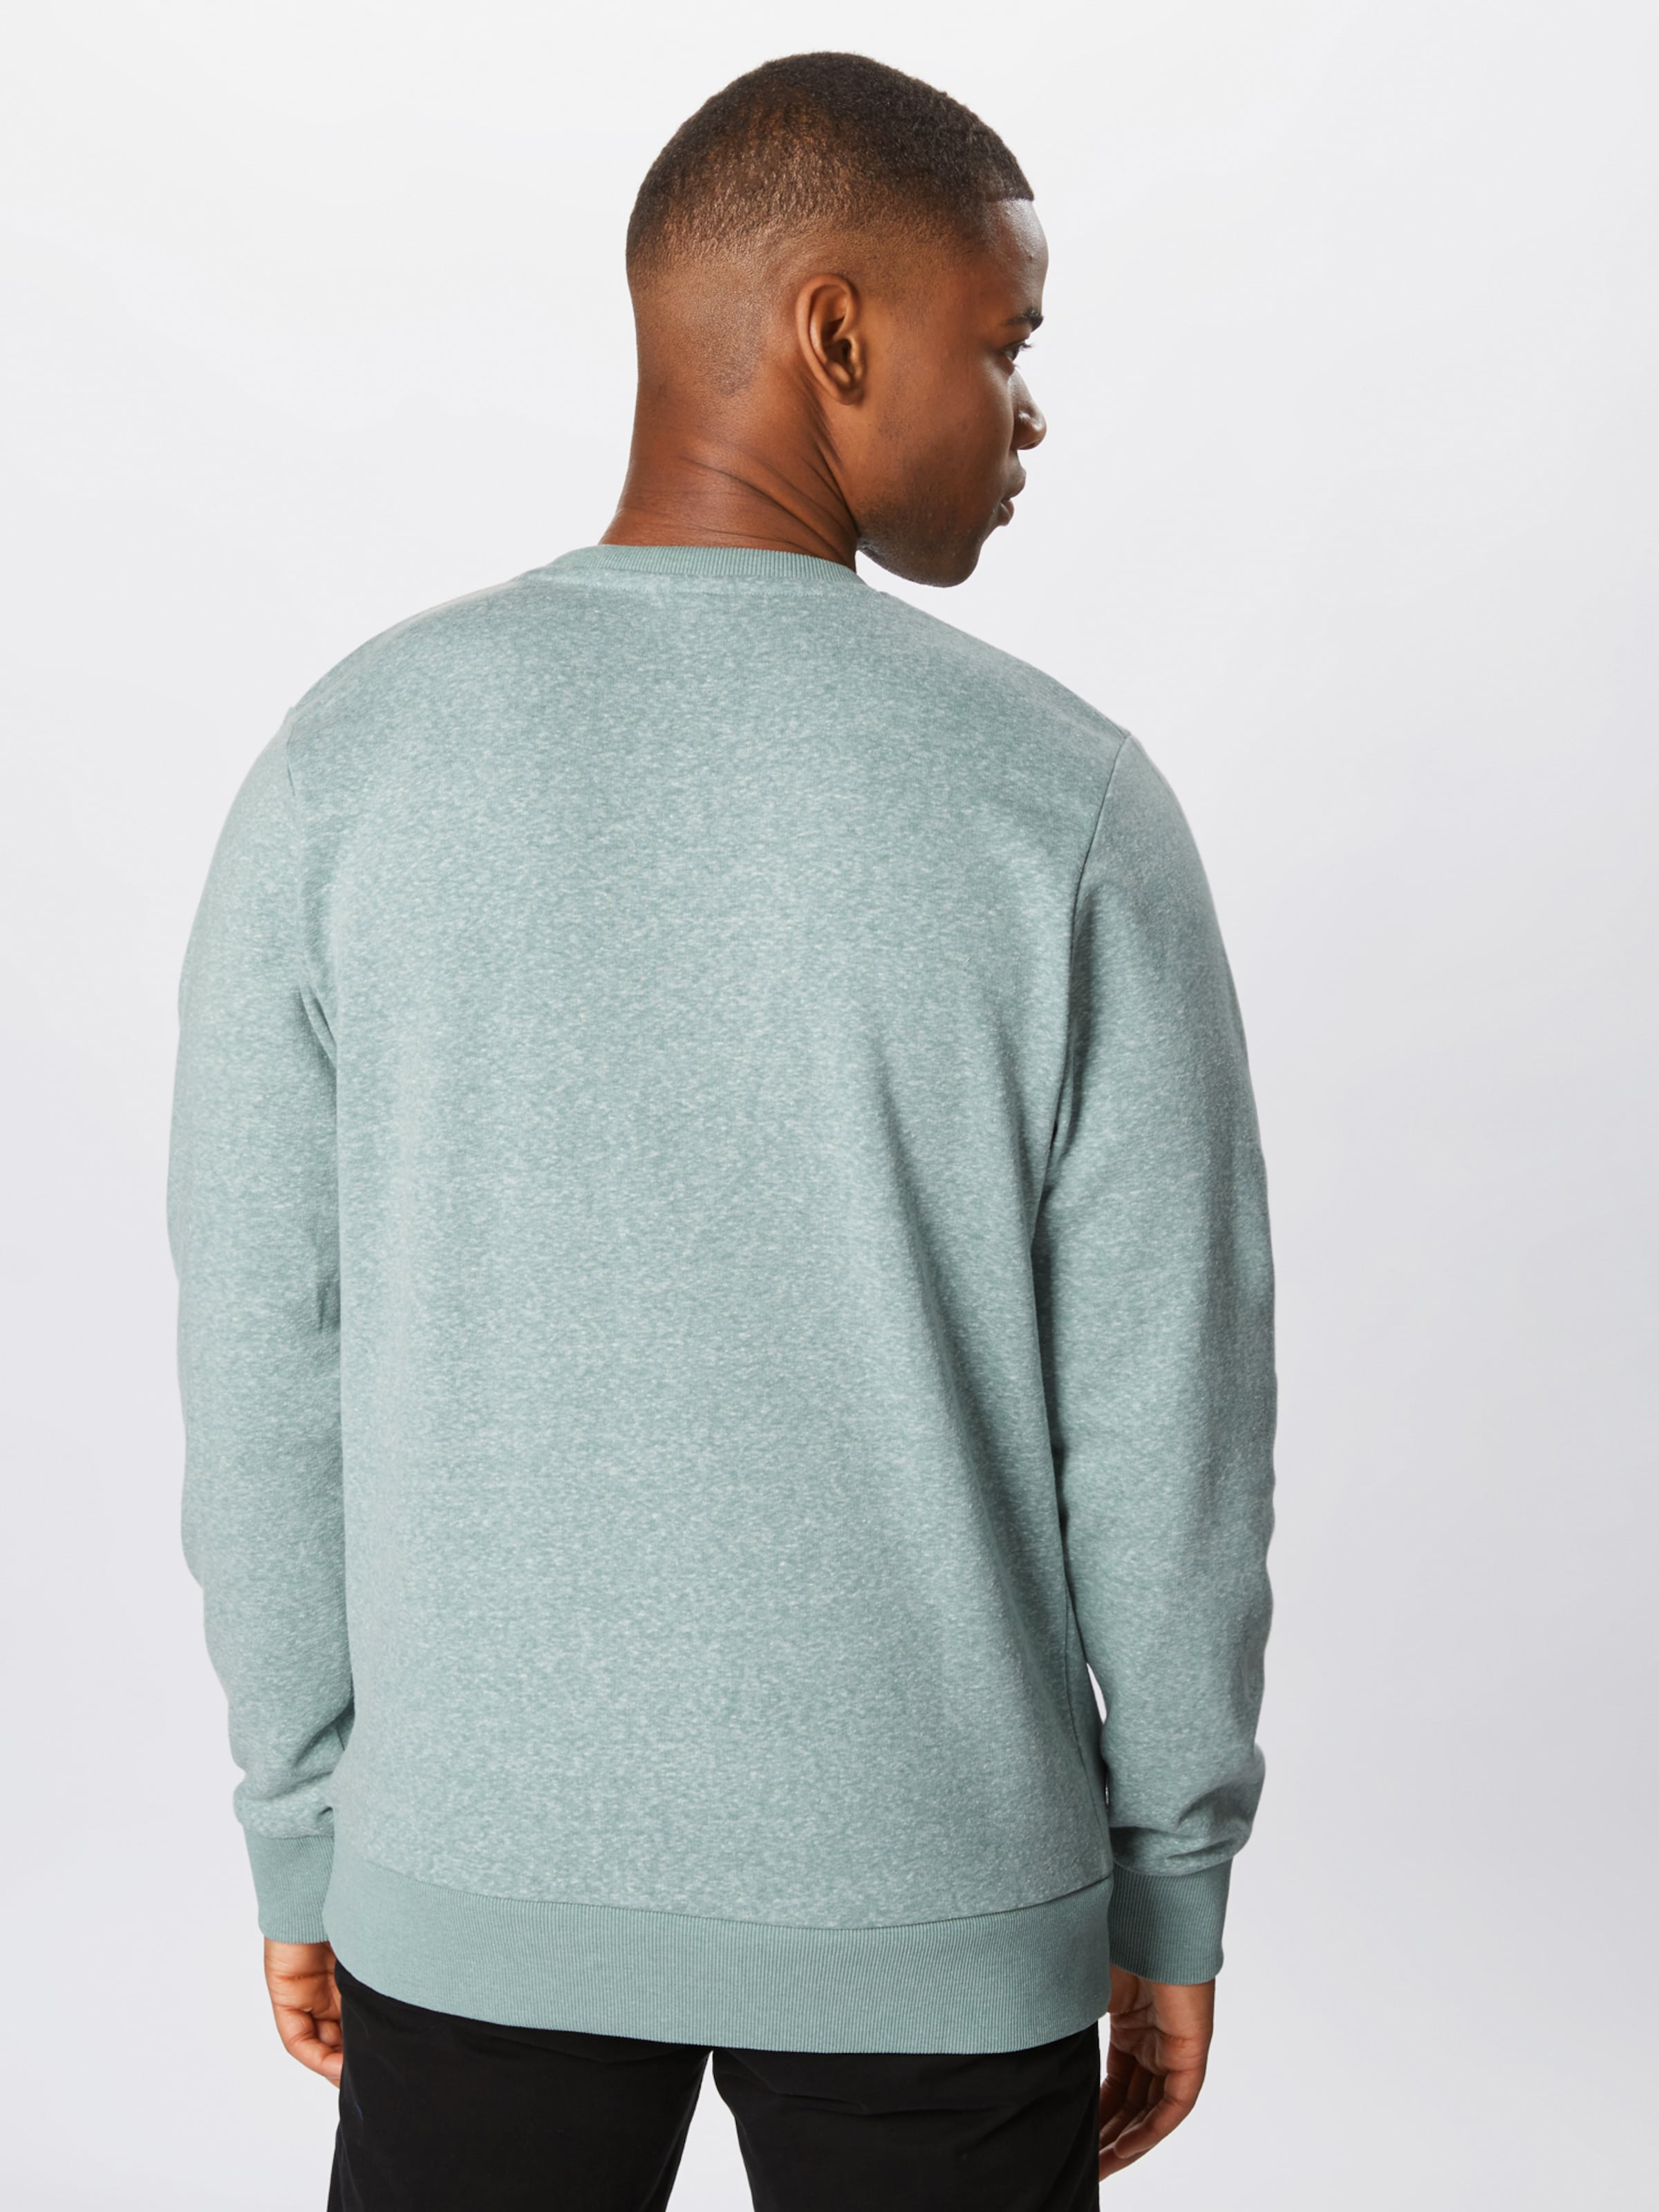 Jackamp; Sweat' shirt En 'jorsummertime FoncéBlanc Sweat Jones Bleu pqUVzGSM